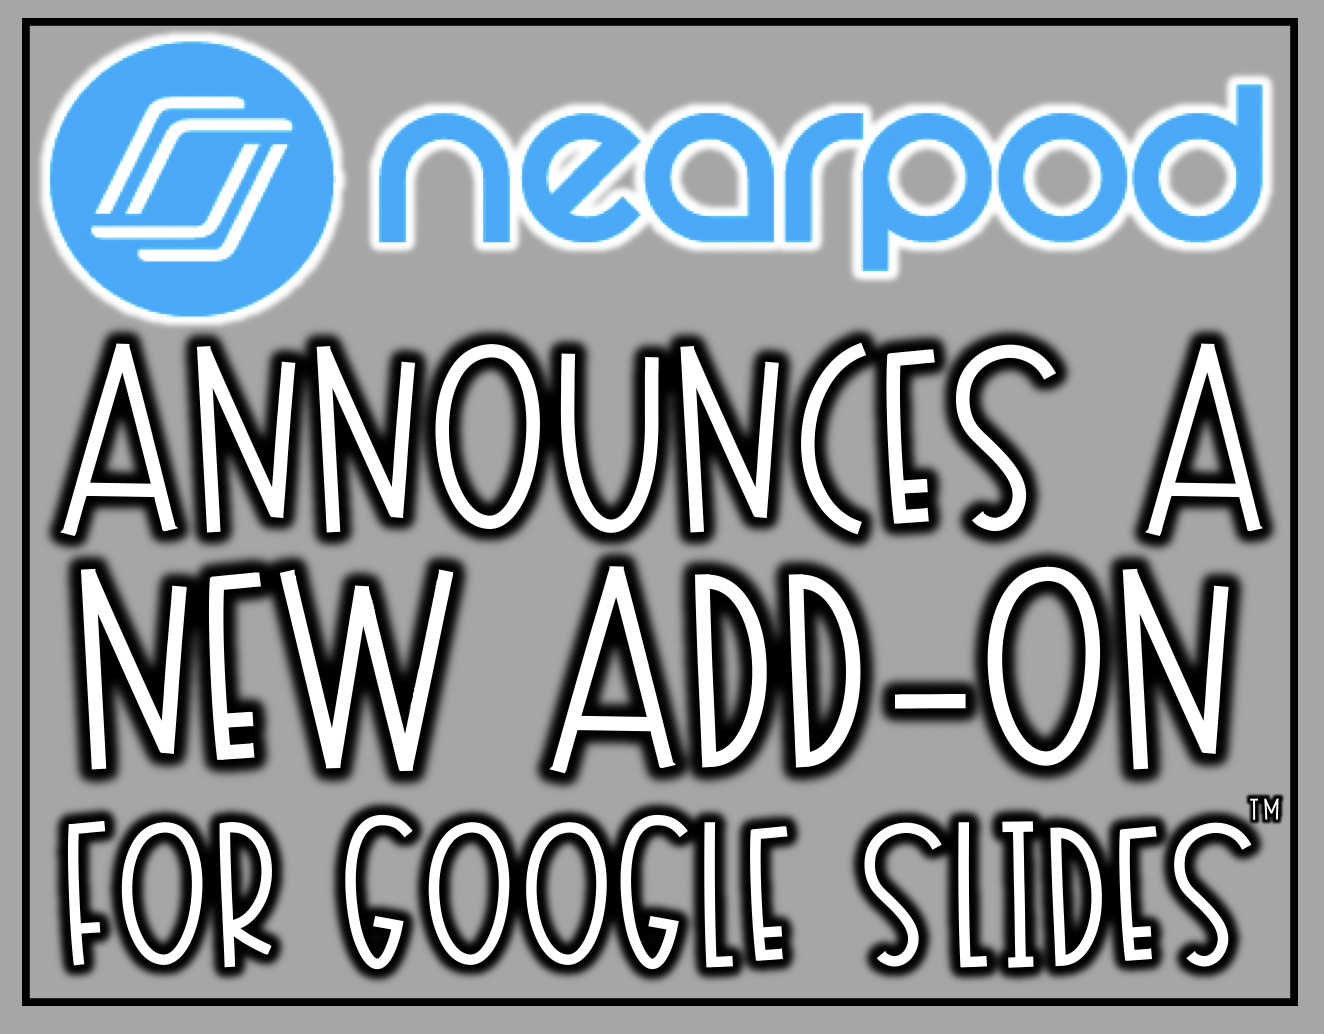 Nearpod announces a new add-on for Google Slides